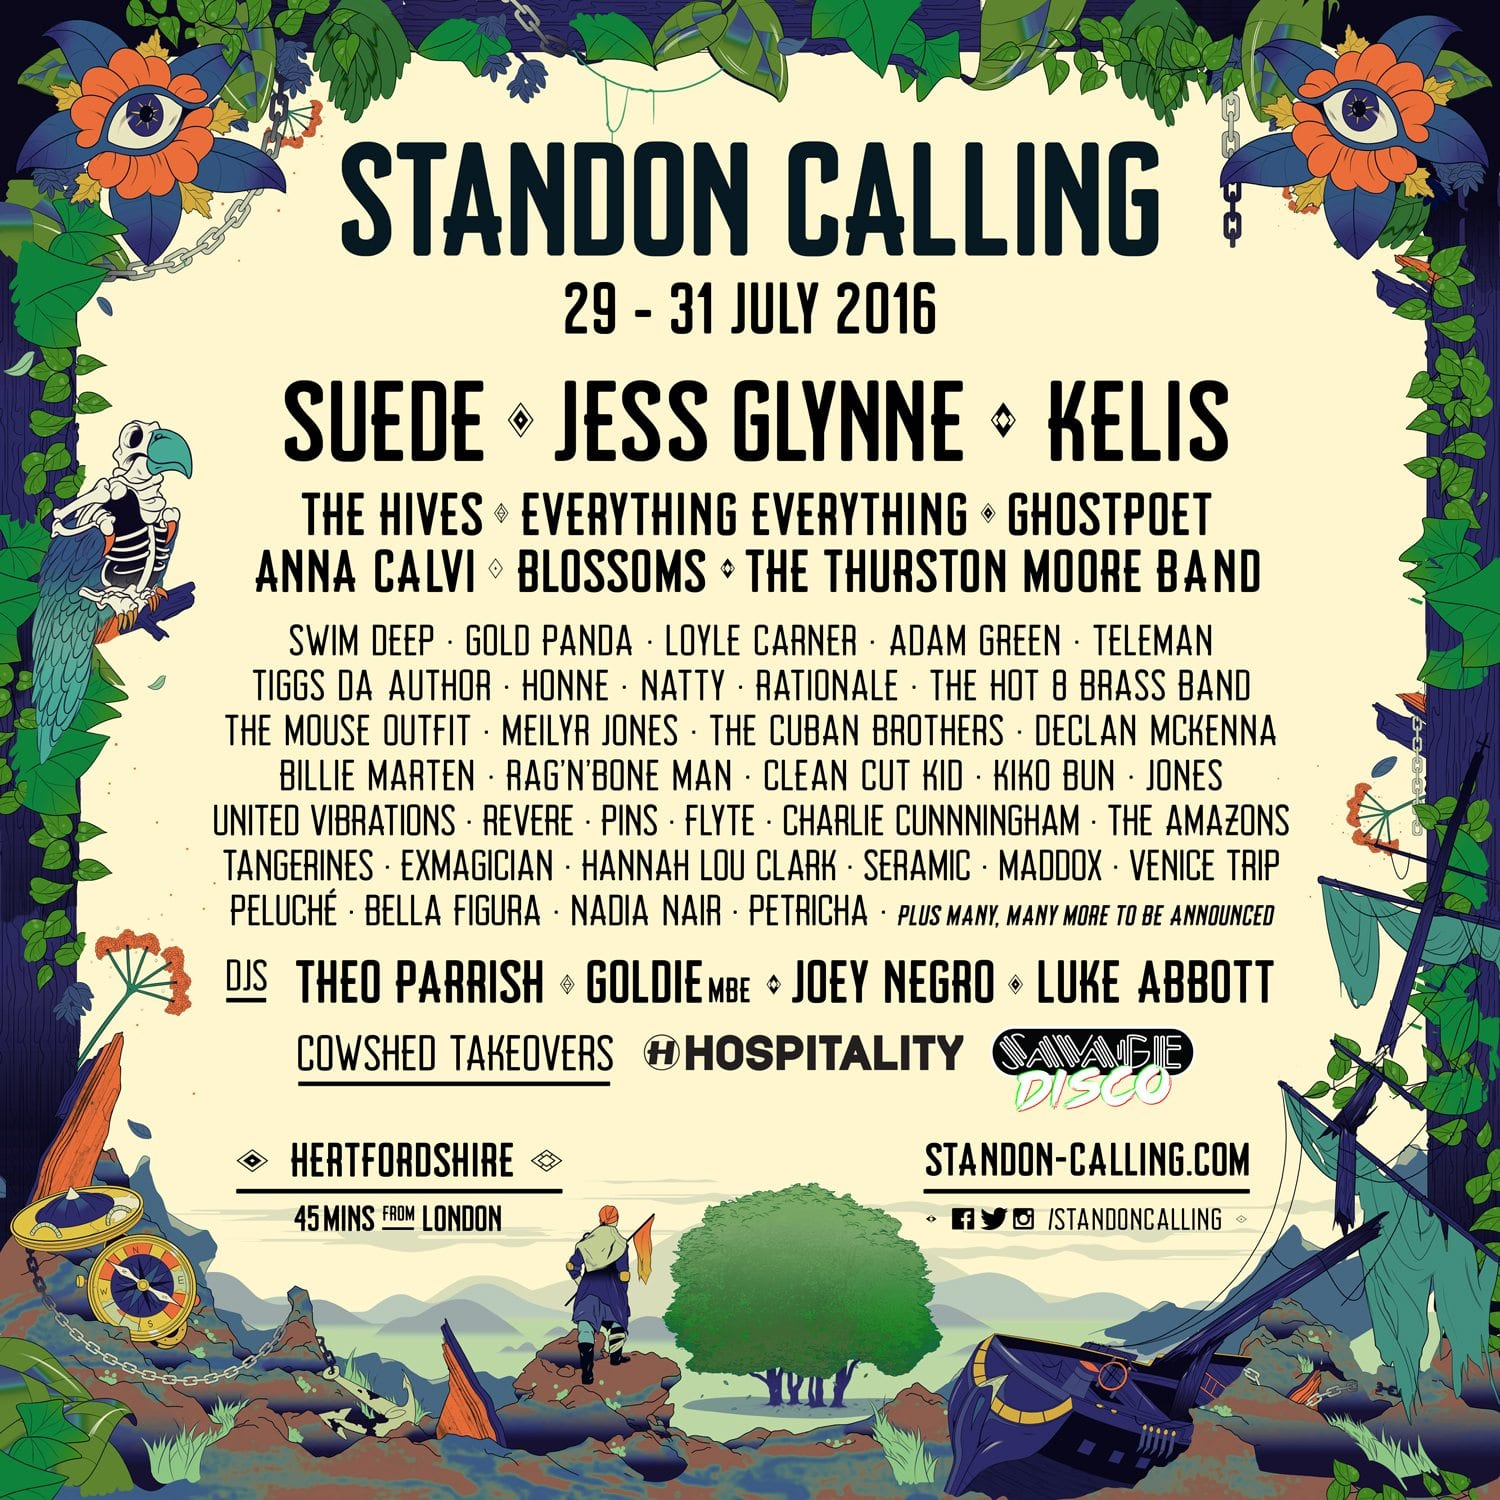 Standon Calling 2016 Festival Poster